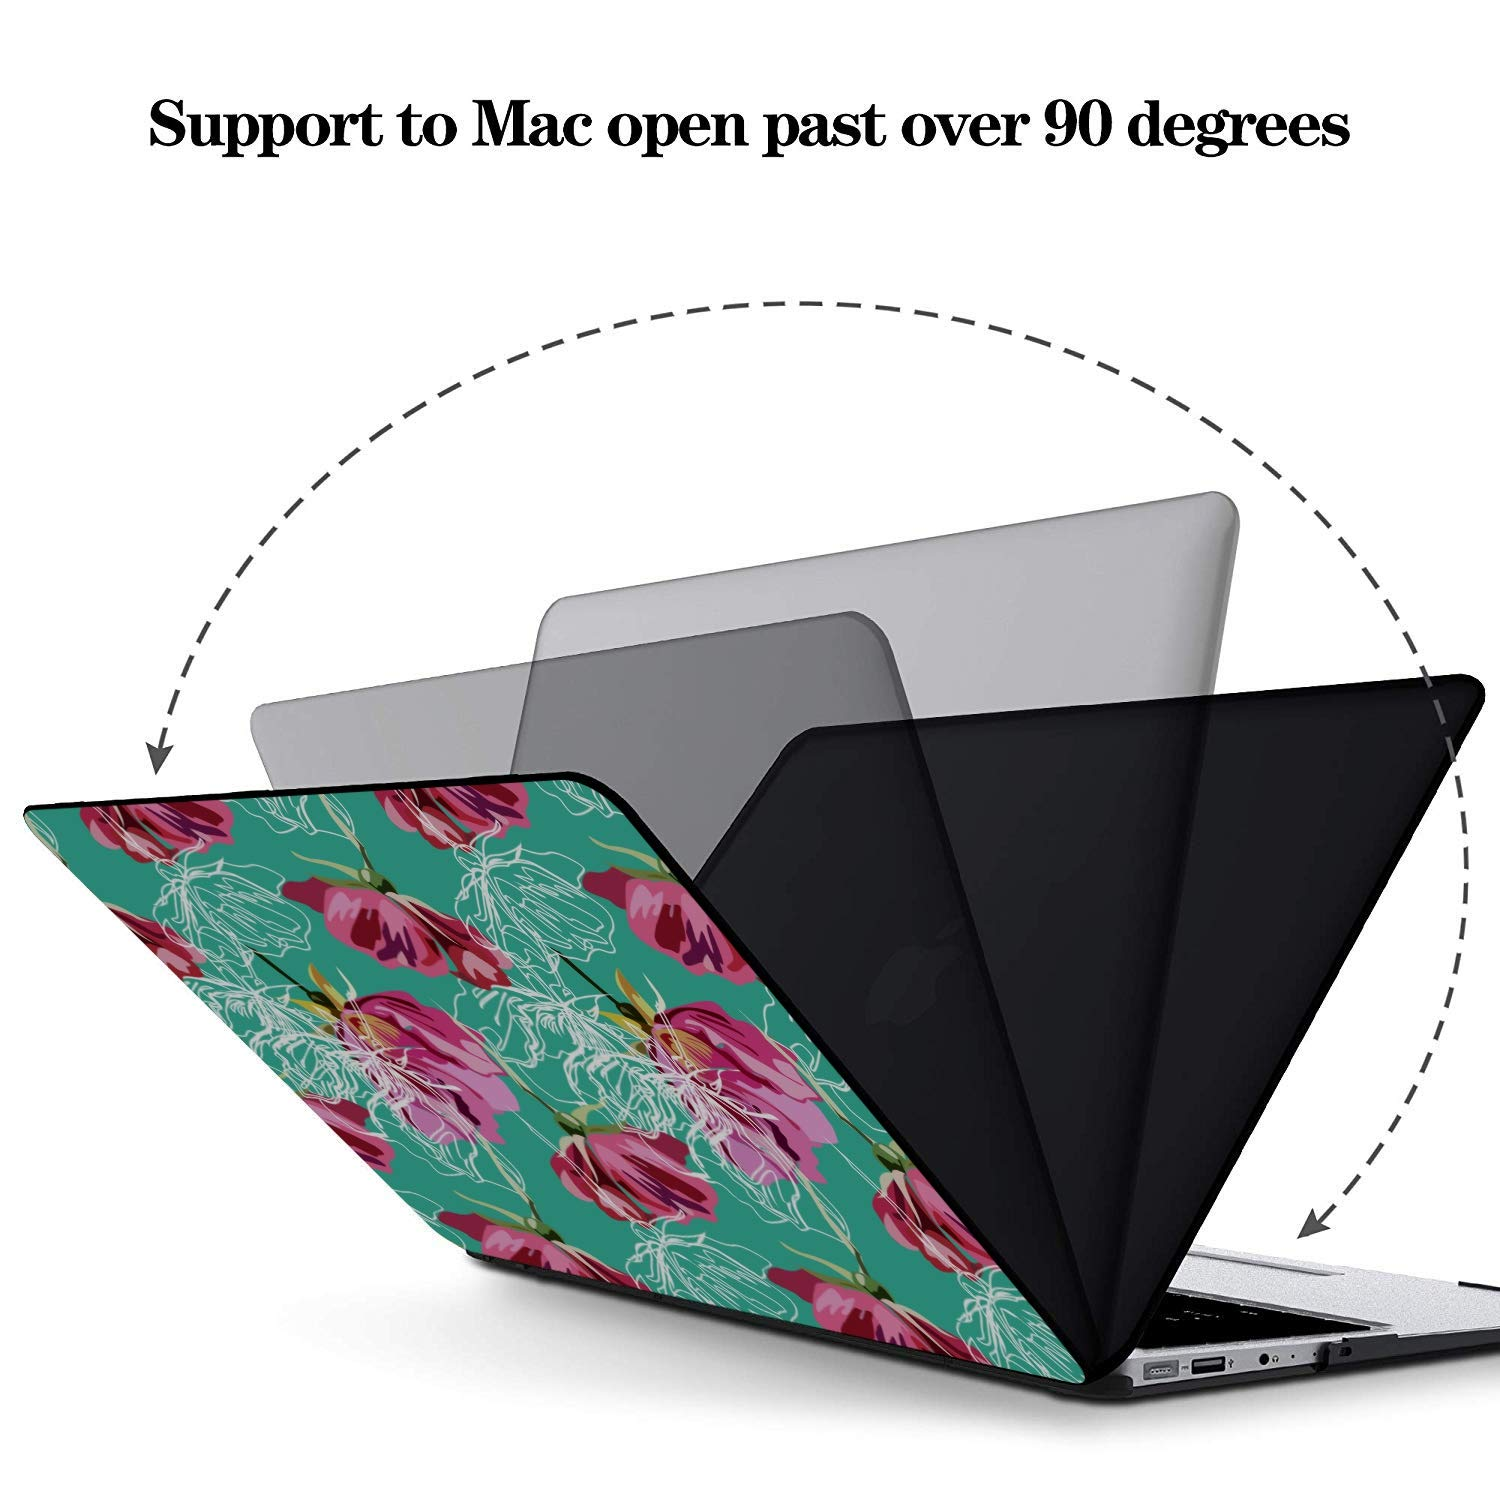 Protective MacBook Pro Case Rose Red Retro Romatic Spring Peony Plastic Hard Shell Compatible Mac Air 11 Pro 13 15 15 Inch Laptop Cover Protection for MacBook 2016-2019 Version